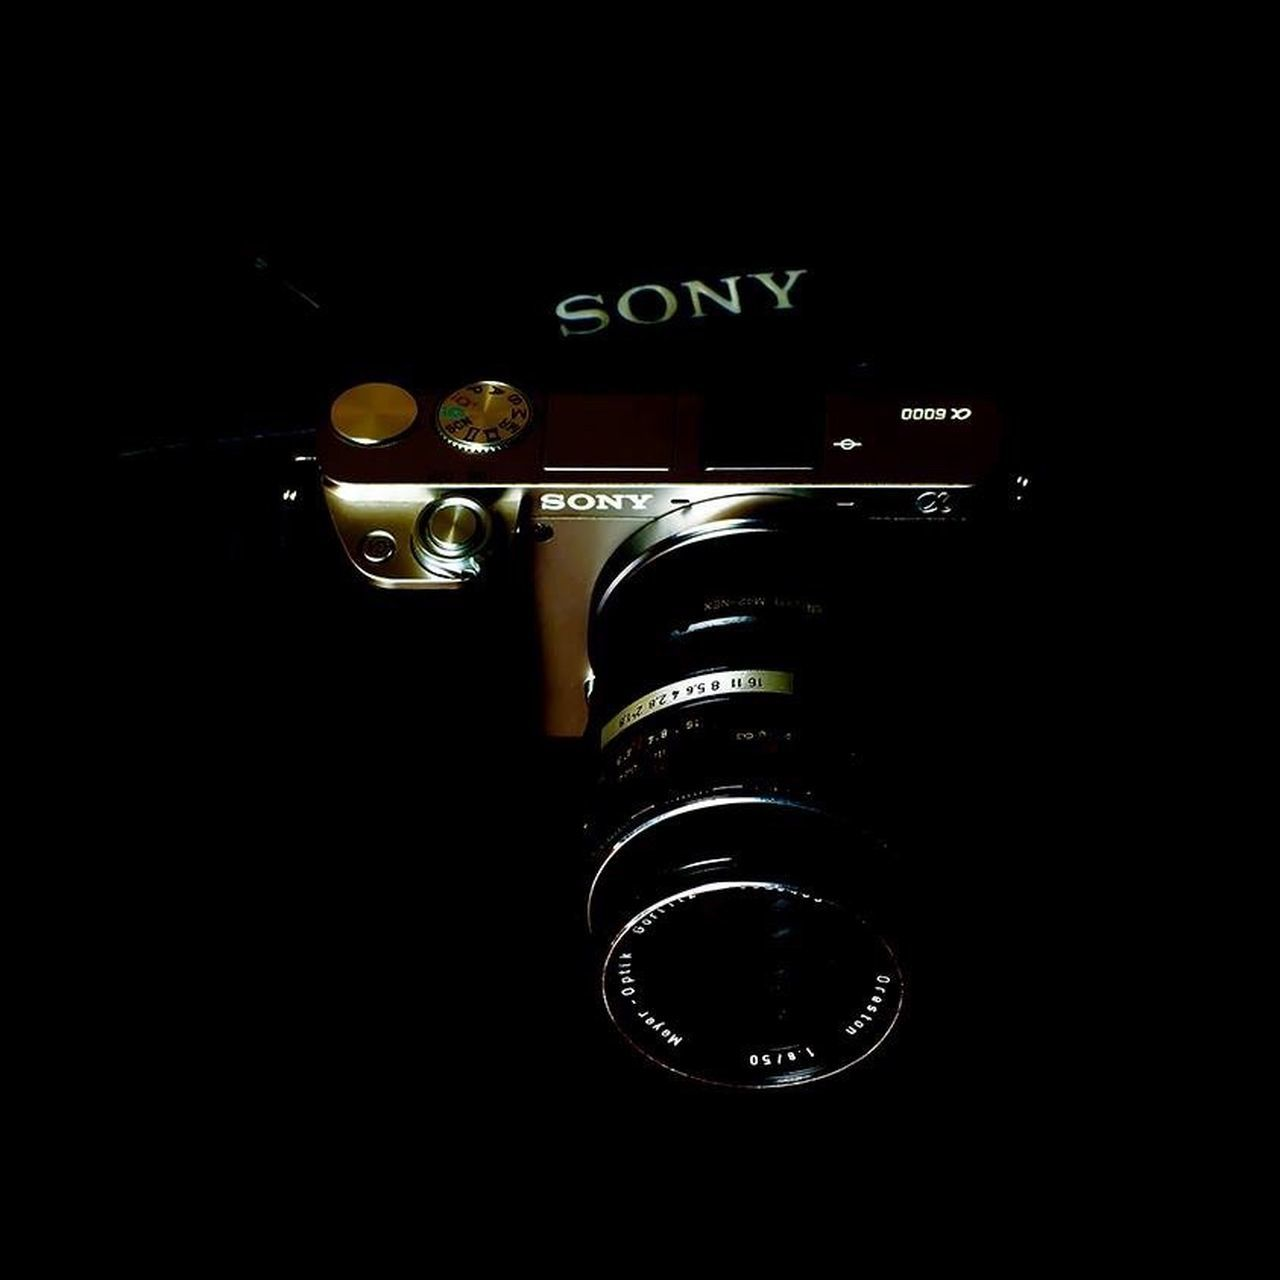 Sony a6000 Black Background Sony Sony A6000 Sonyimage Sonyphotography Sony α♡Love